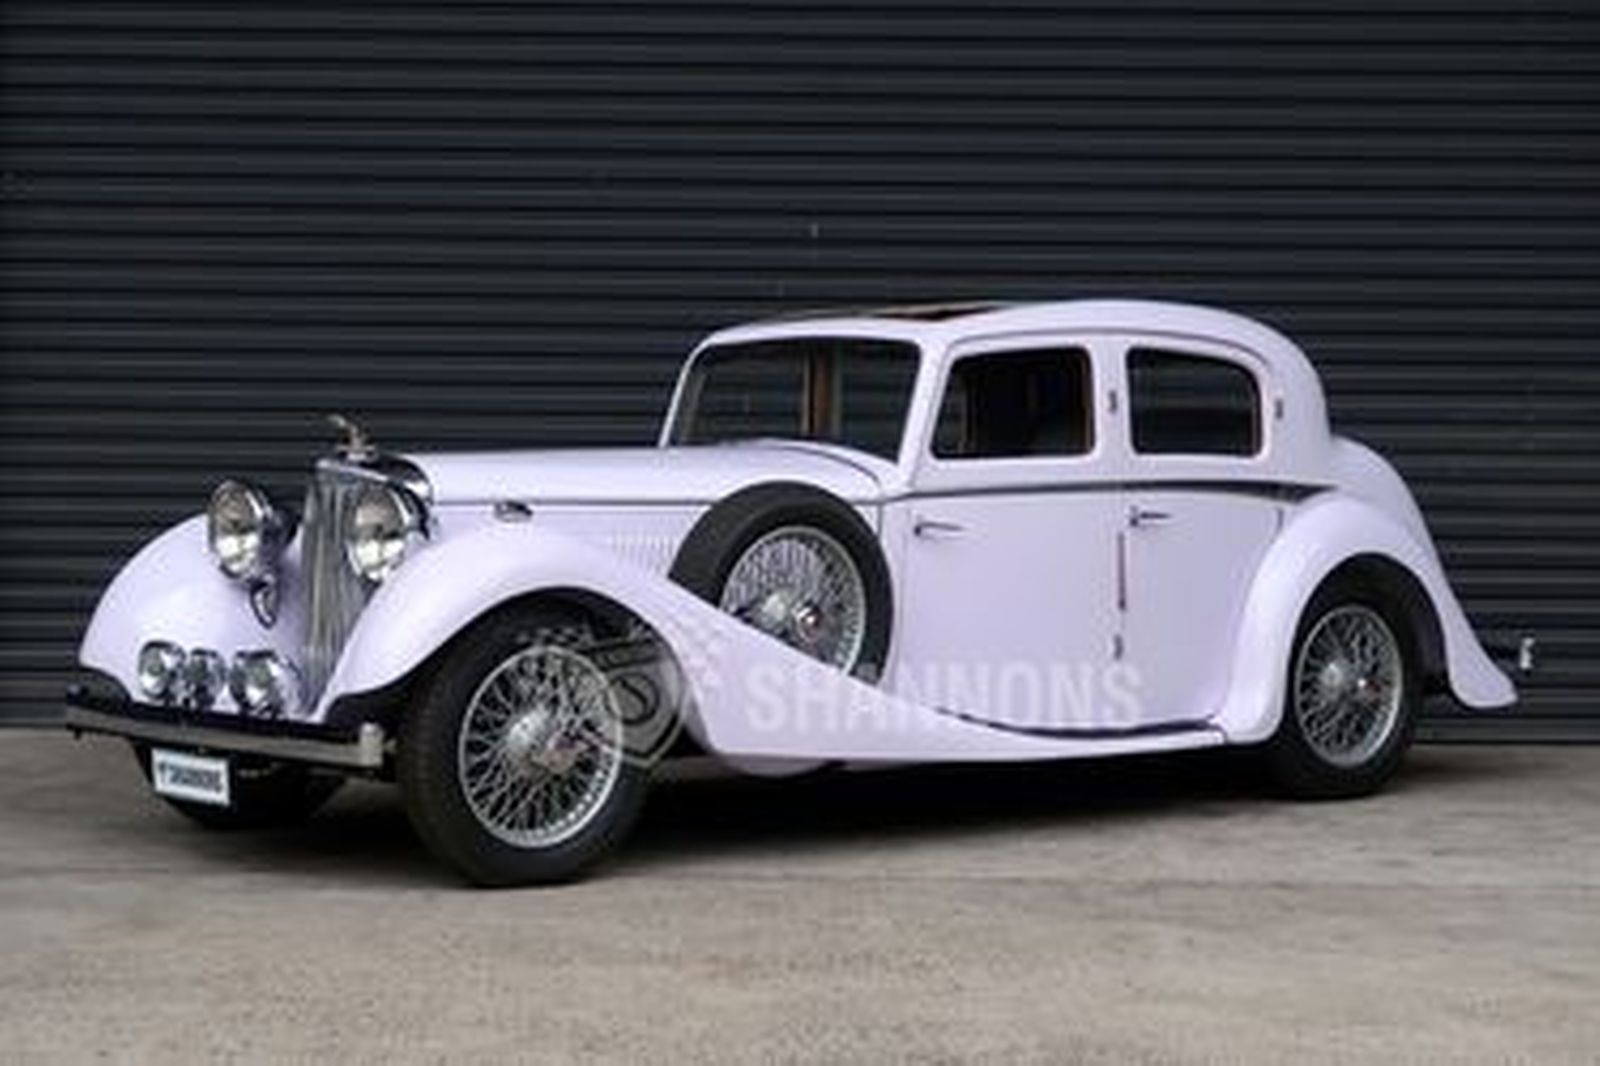 Jaguar SS 2½ Litre Saloon (Project)